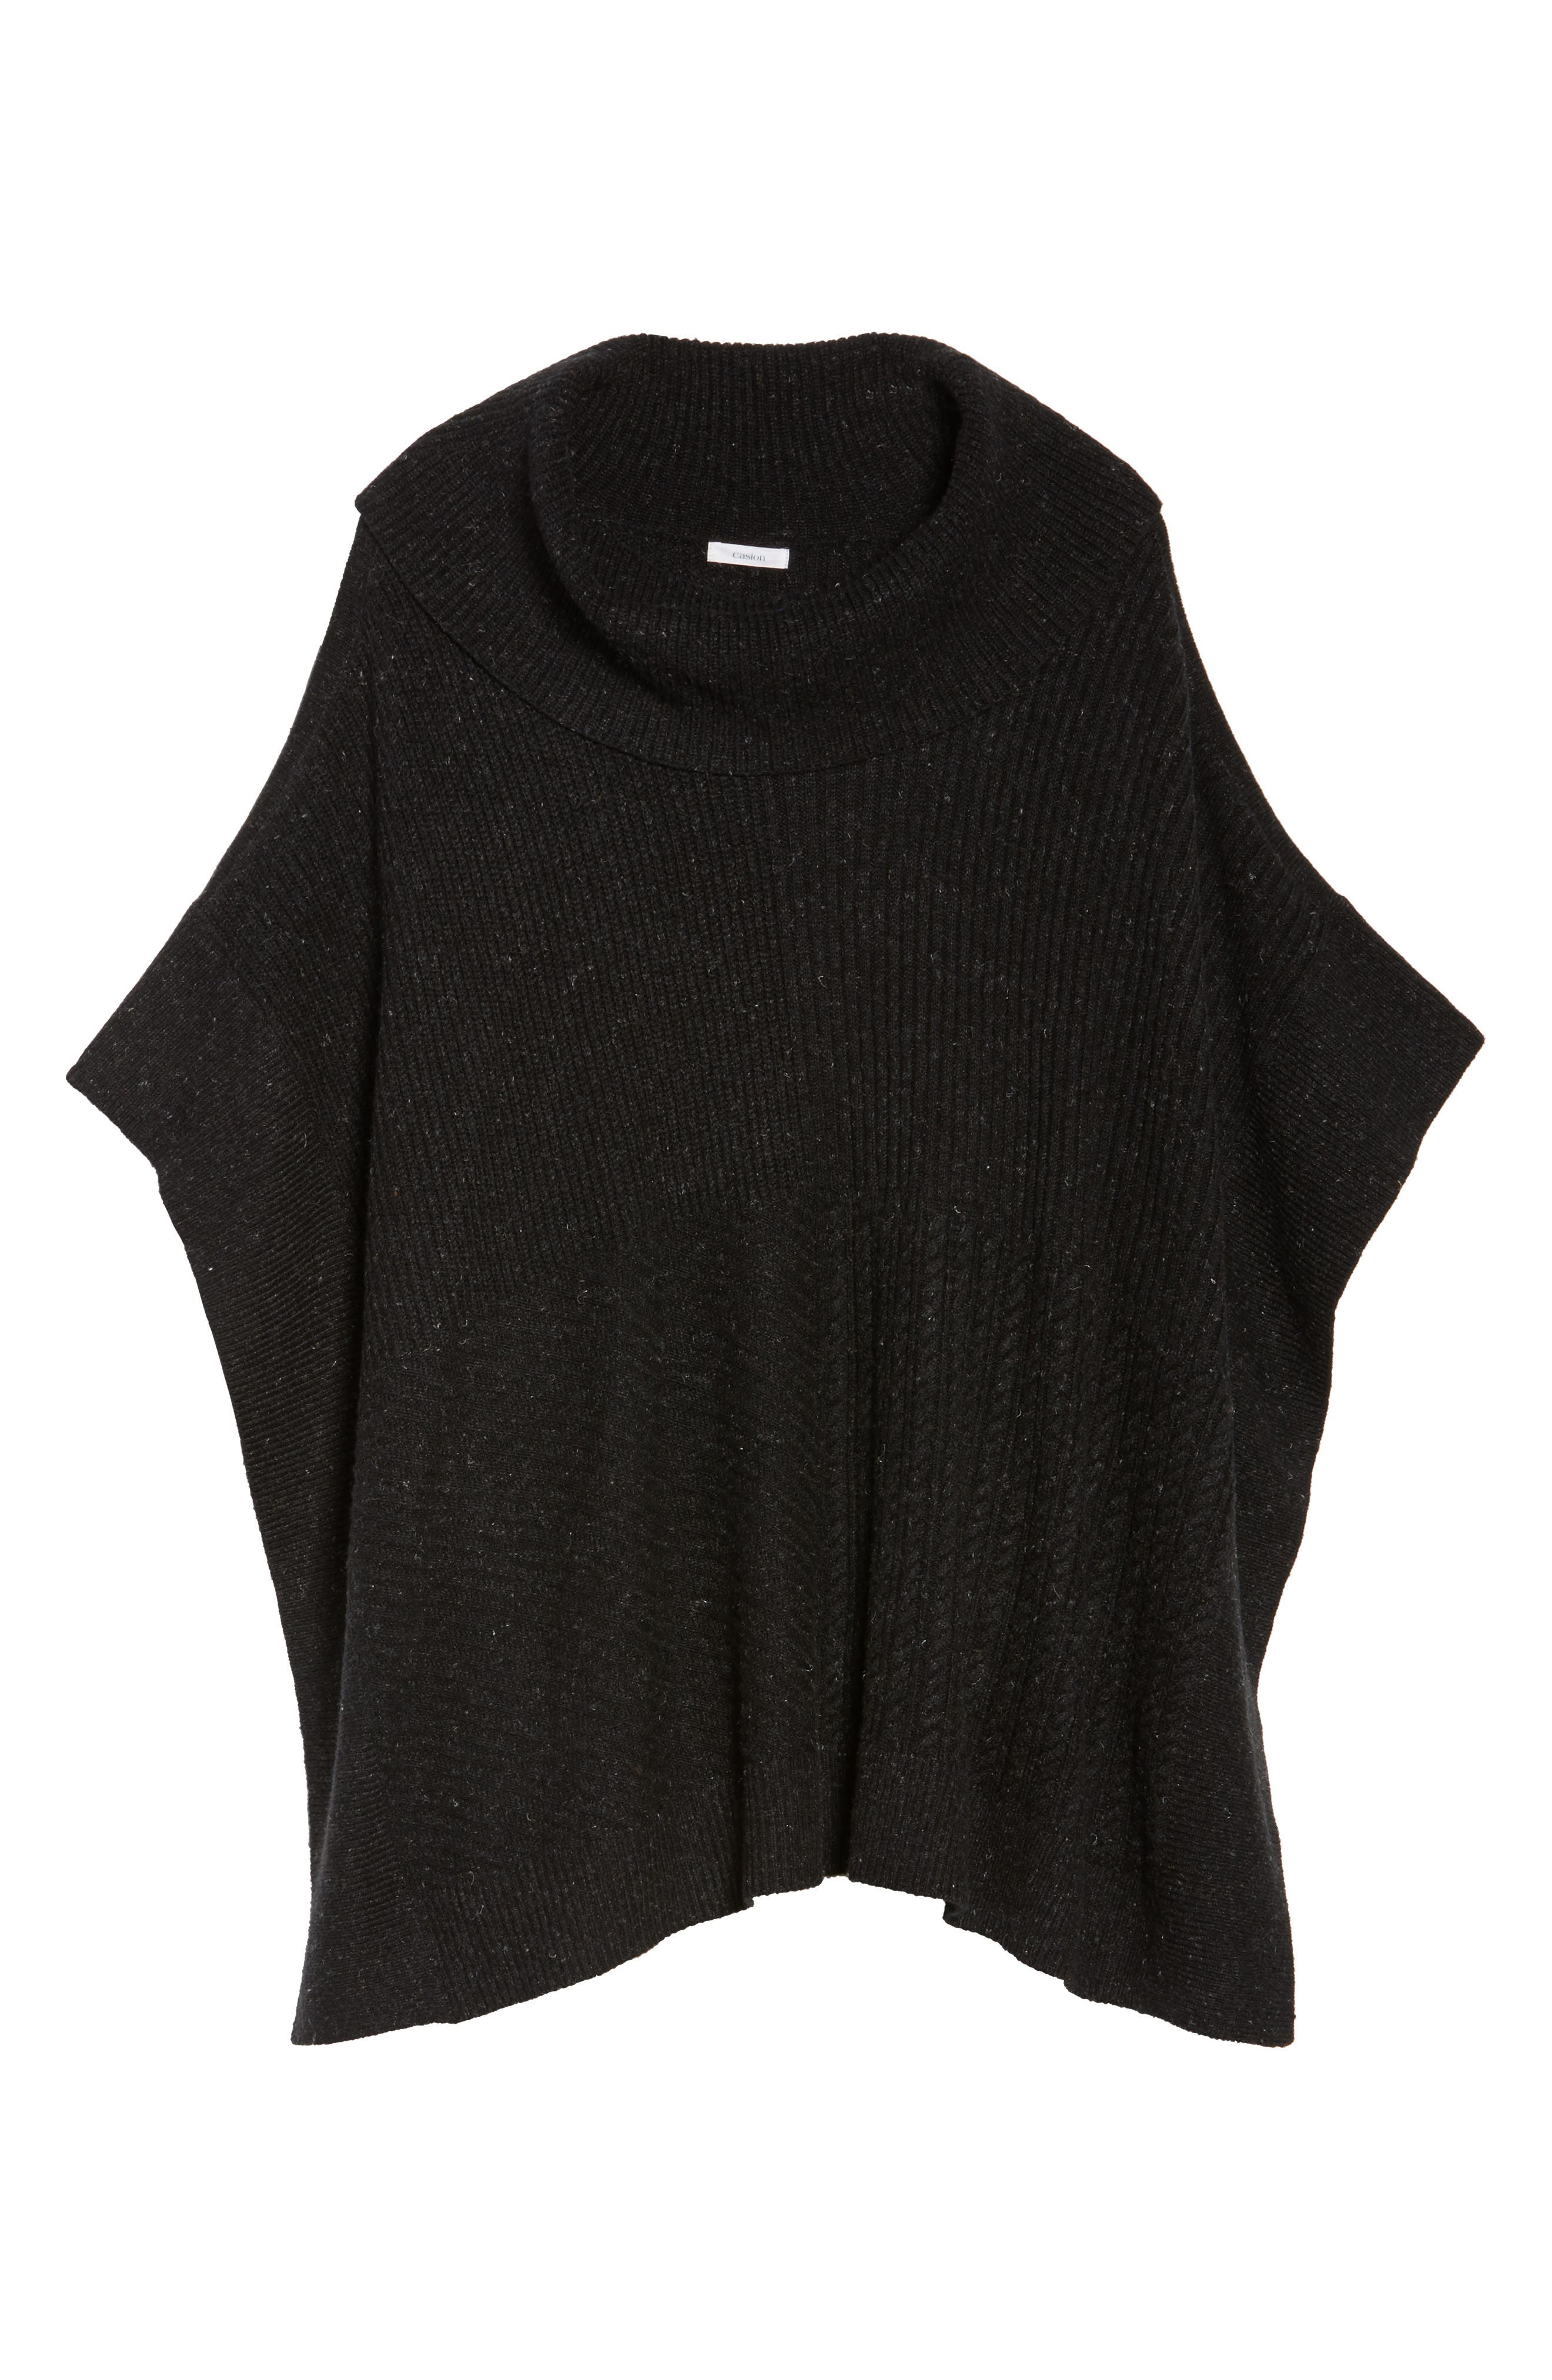 Mixed Stitch Poncho Sweater,                             Alternate thumbnail 6, color,                             Black